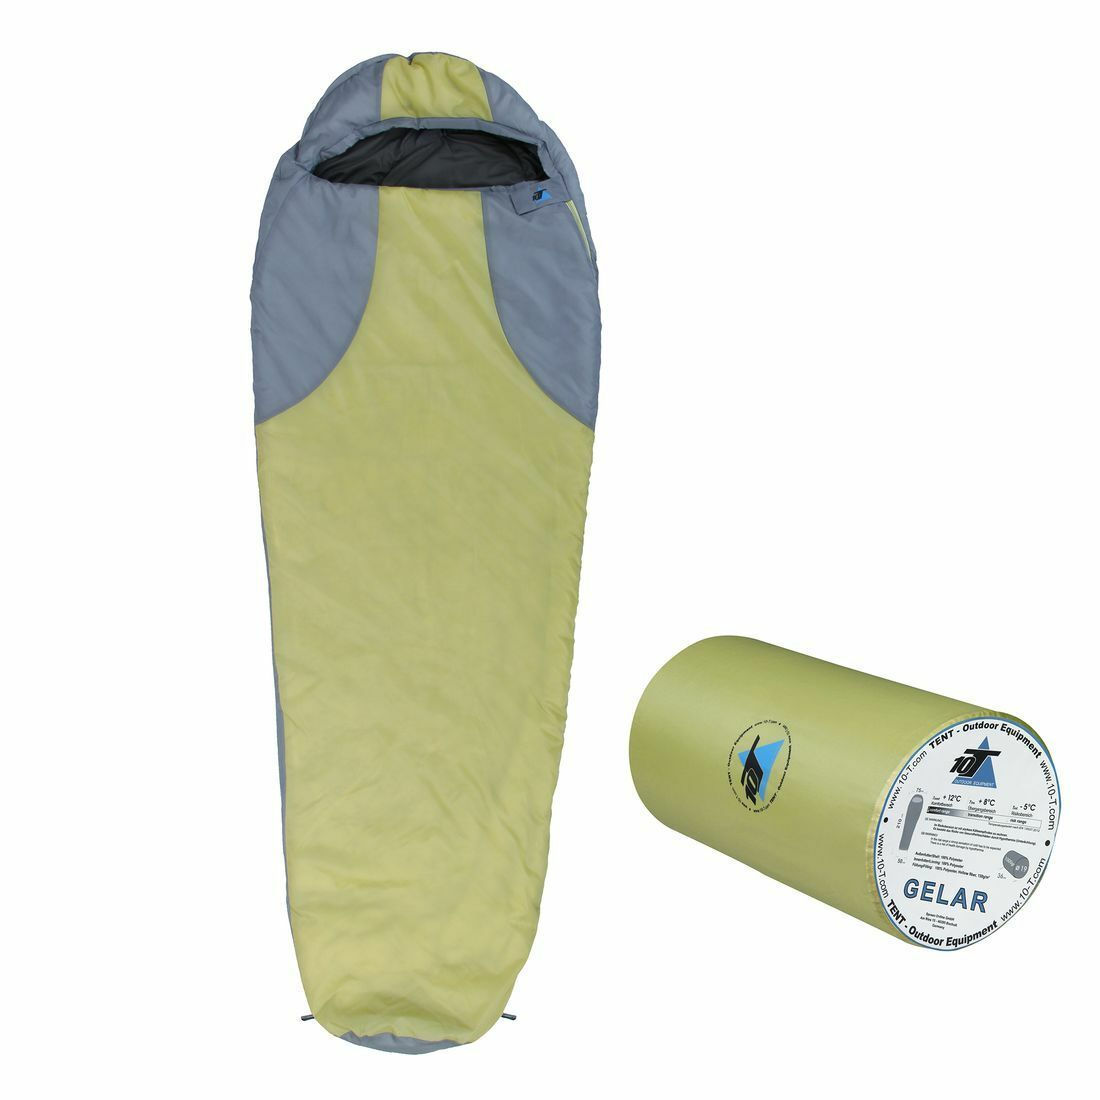 Gelar 210x75 cm Mummy sleeping bag -5° warm 1000g light green 150g m²